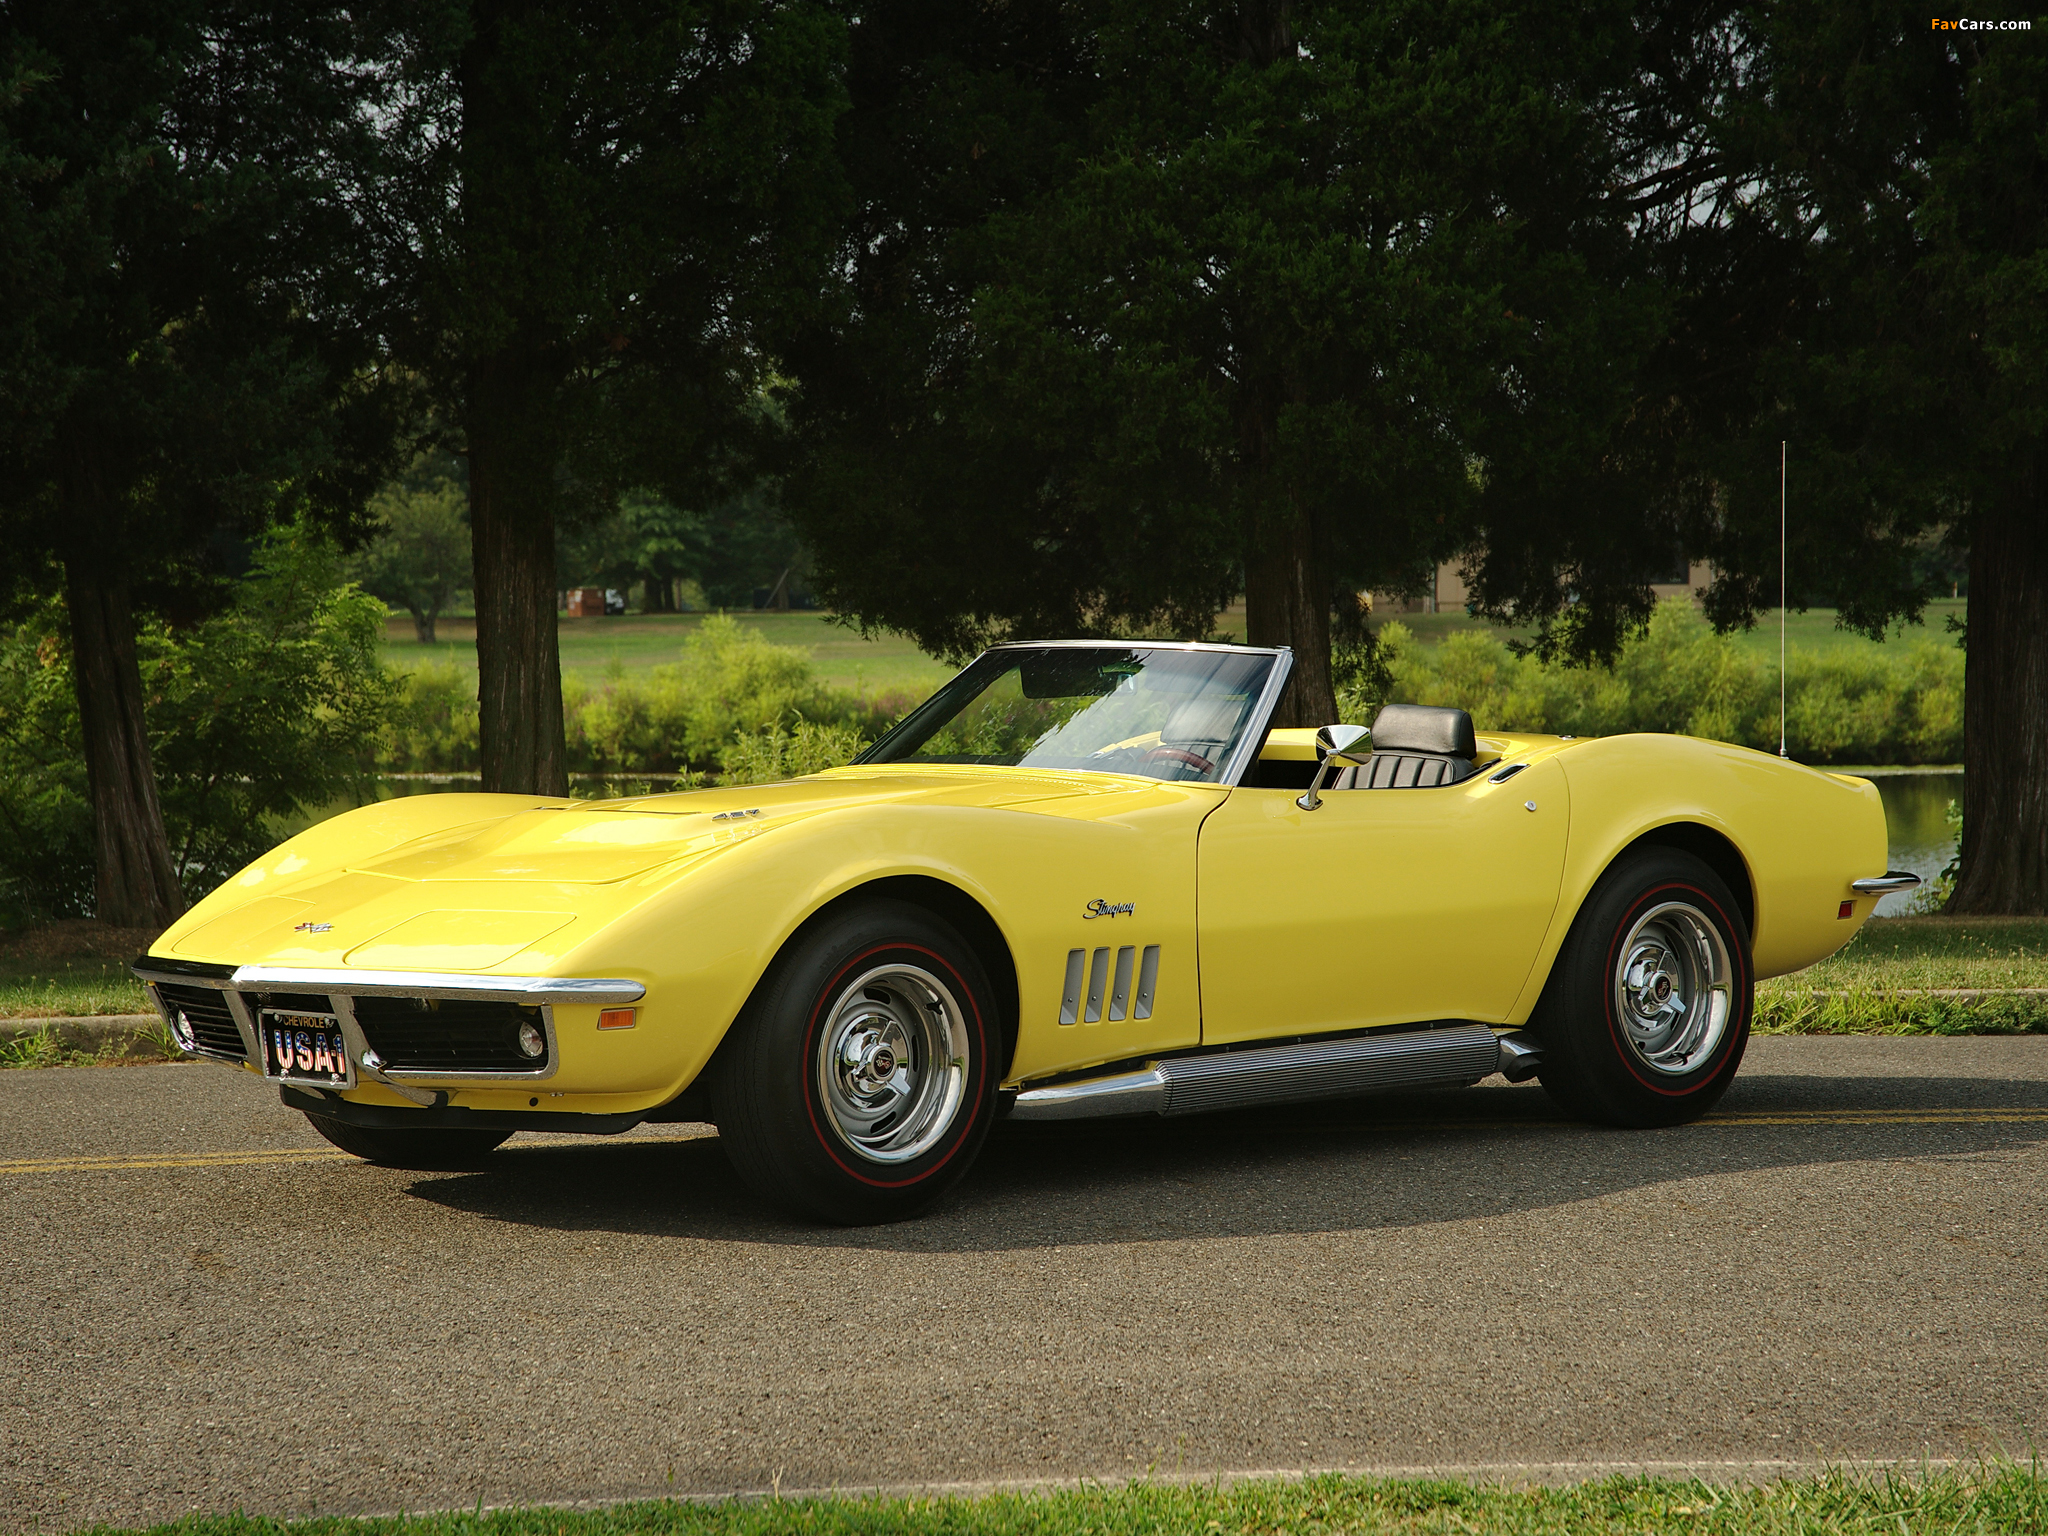 pictures of corvette stingray convertible c3 1969 2048x1536. Black Bedroom Furniture Sets. Home Design Ideas